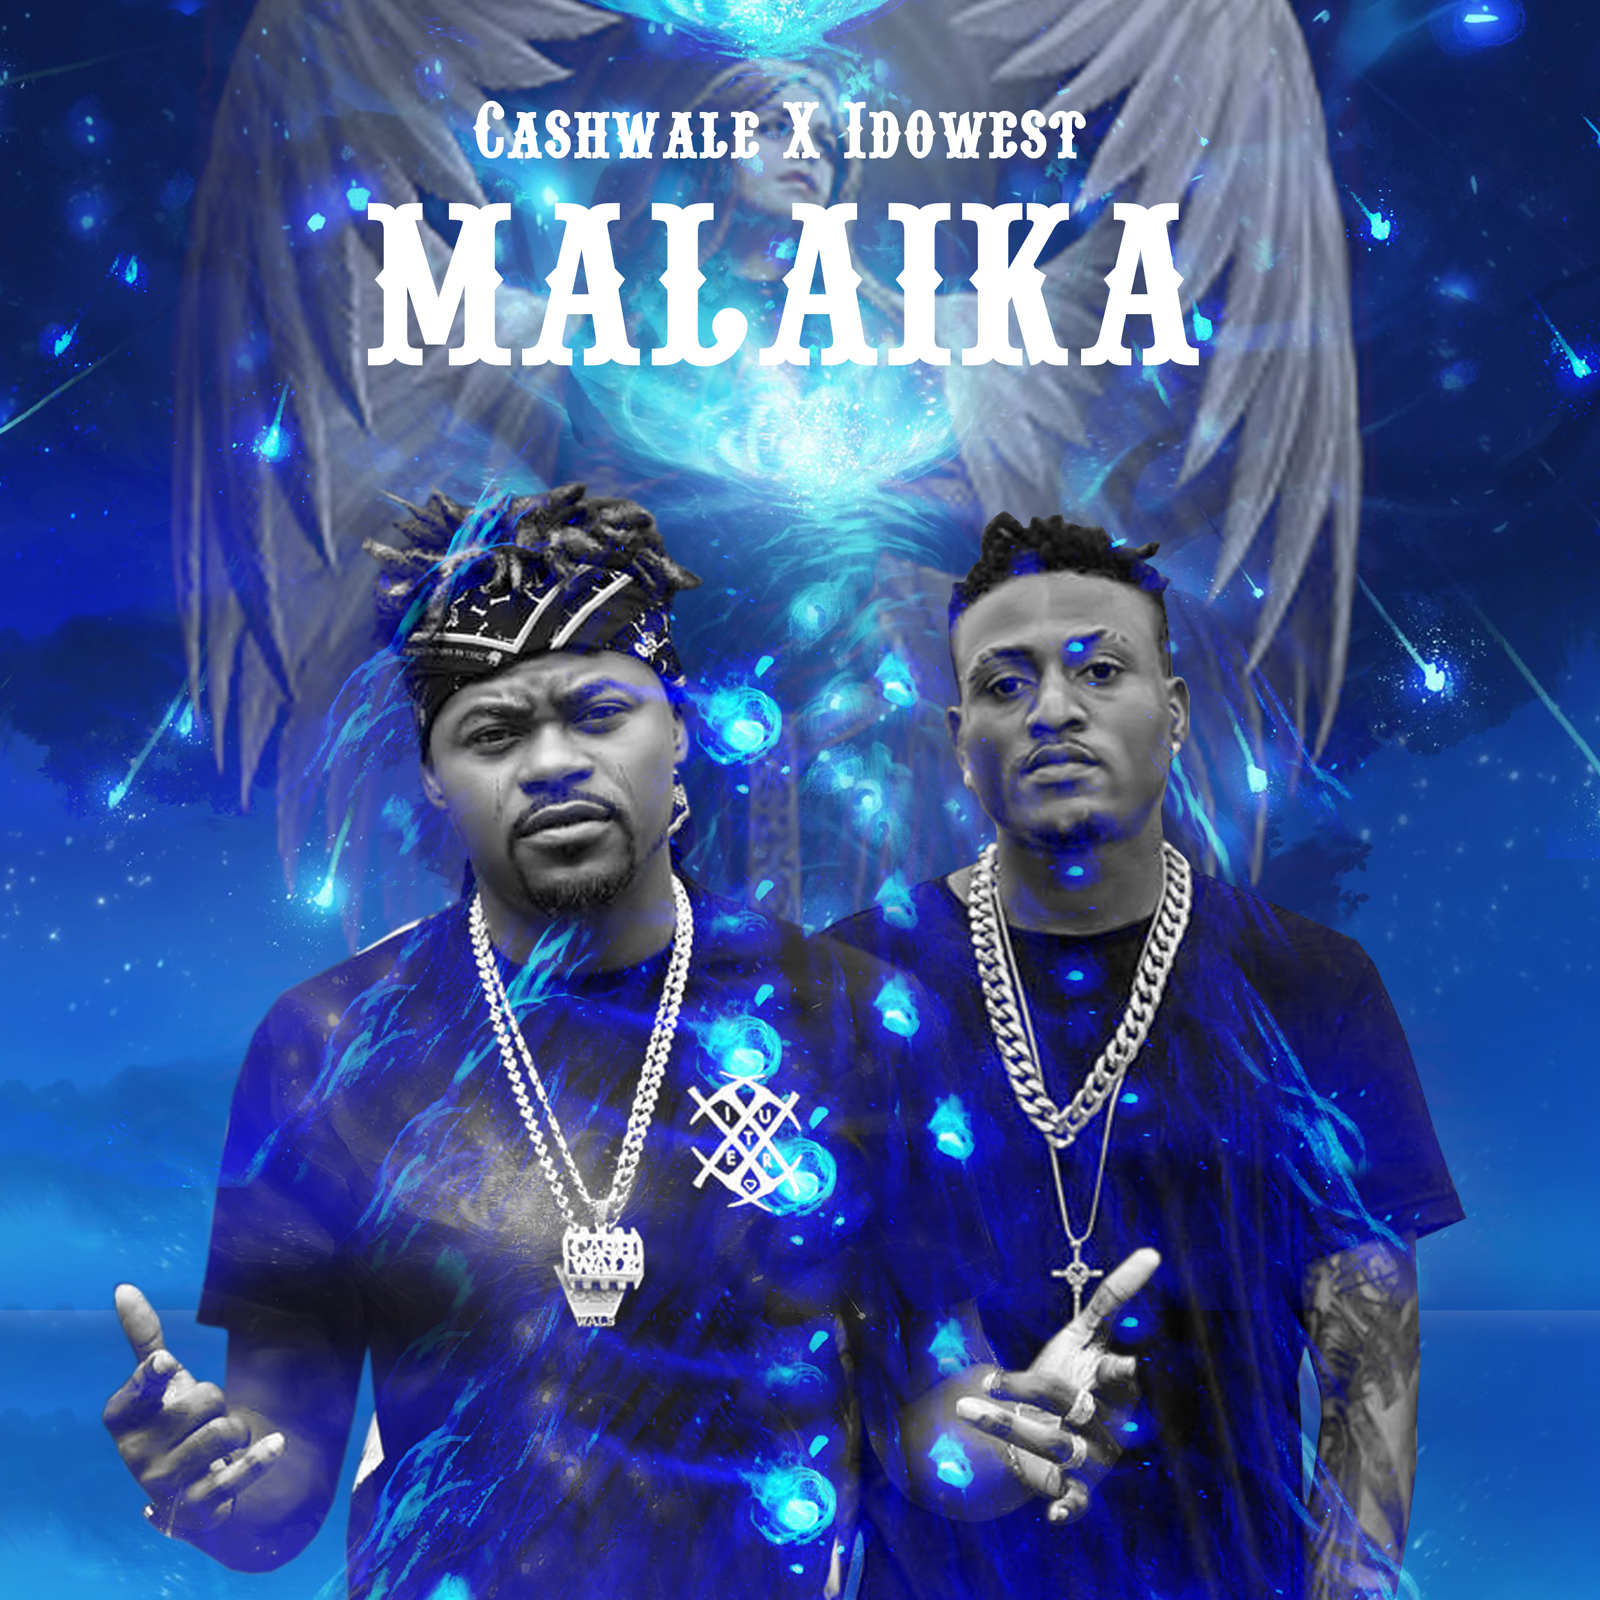 Cash Wale – Malaika ft. Idowest + Handkerchief ft. Idowest x CDQ